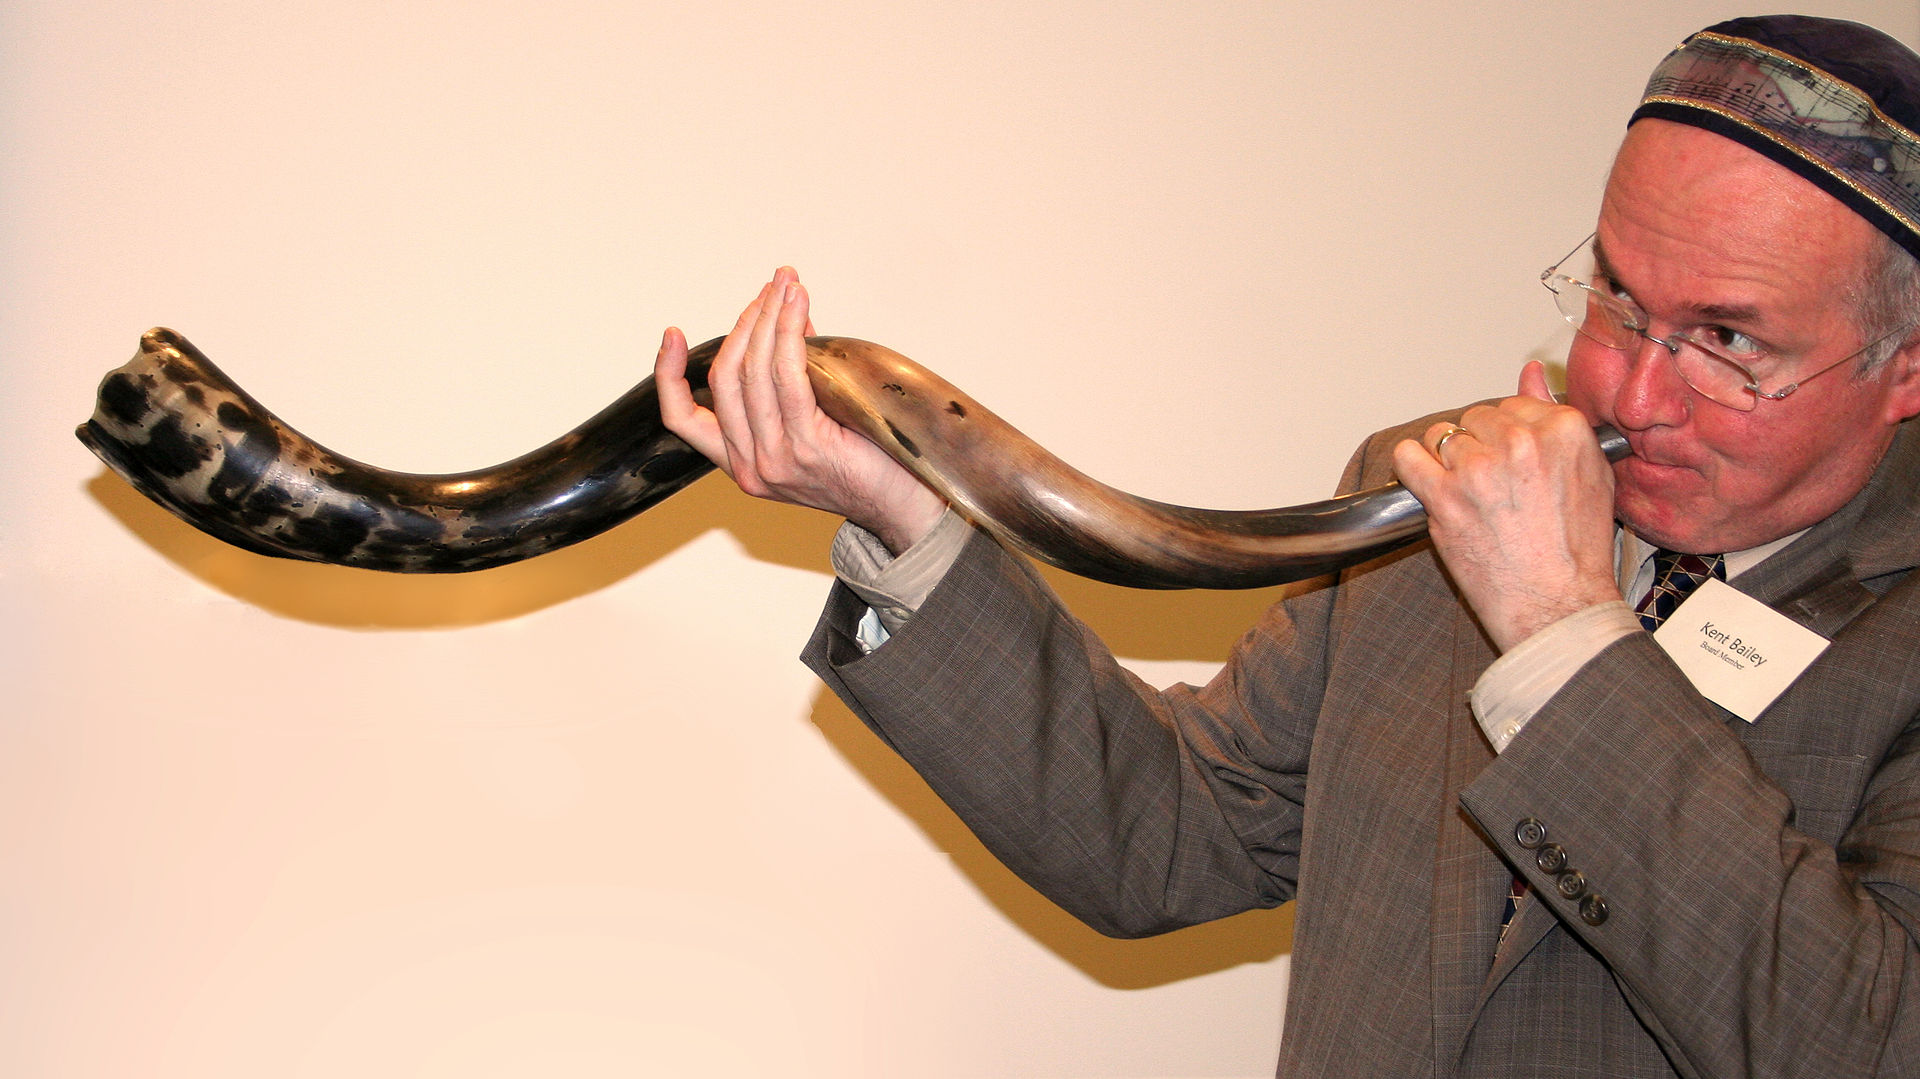 A man demonstrates sounding a shofar at a synagogue in Minnesota. Wikipedia photo.